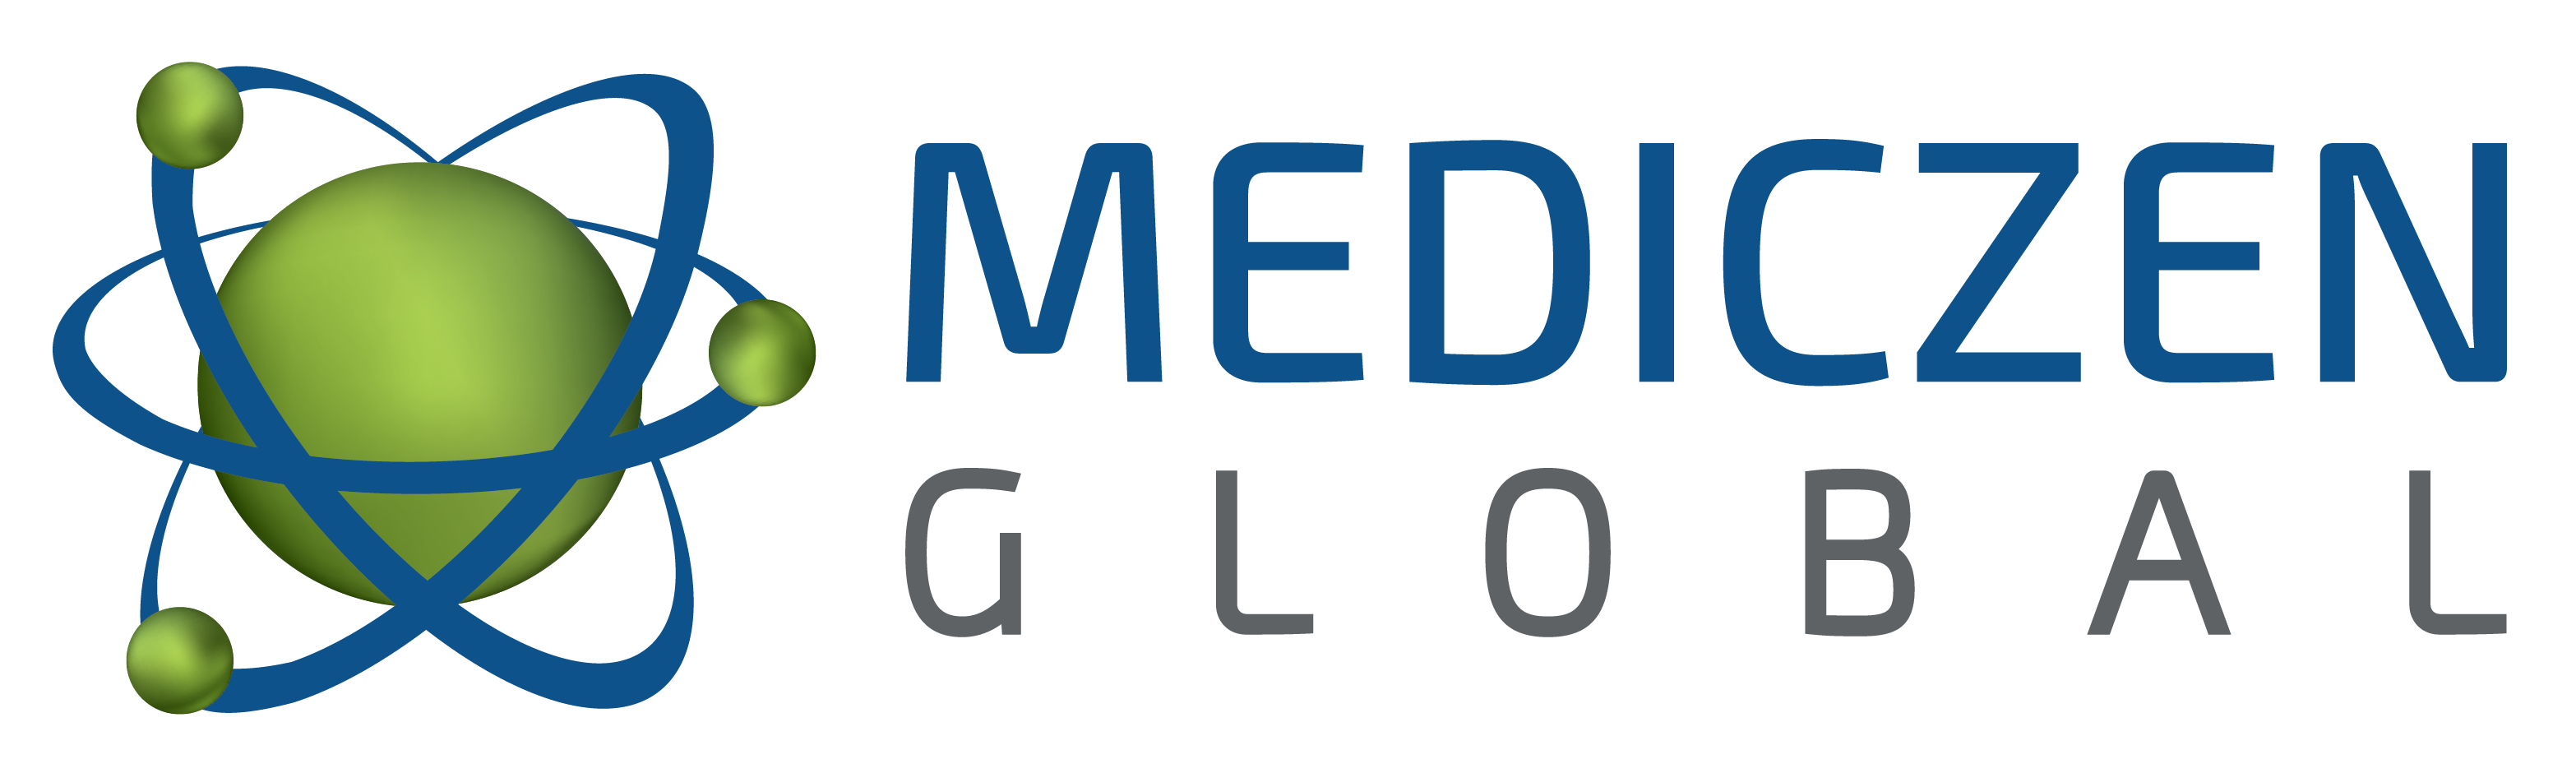 MEDICZEN GLOBAL